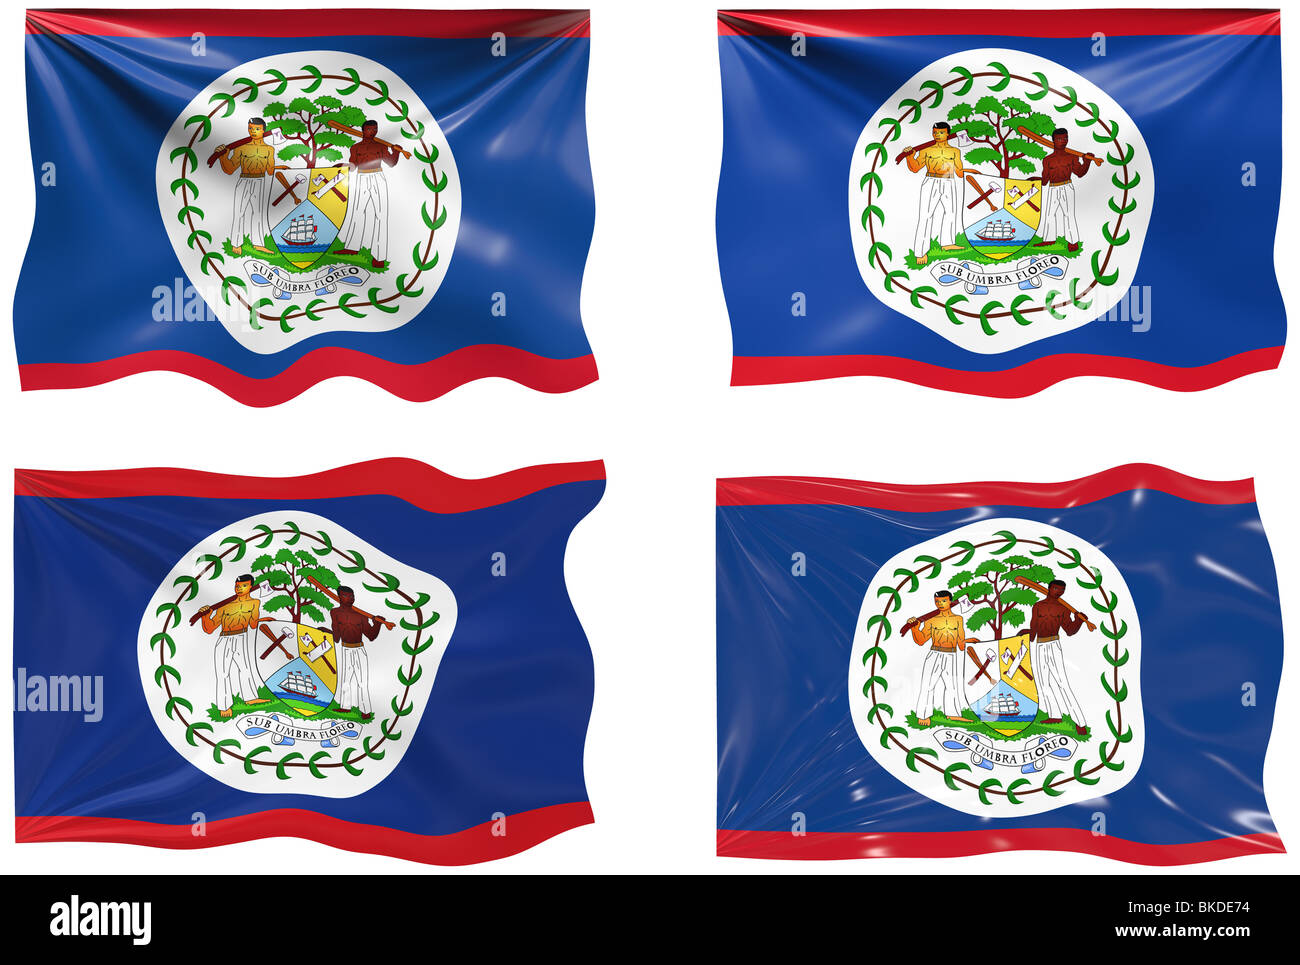 great image flag belize stock photos great image flag belize stock